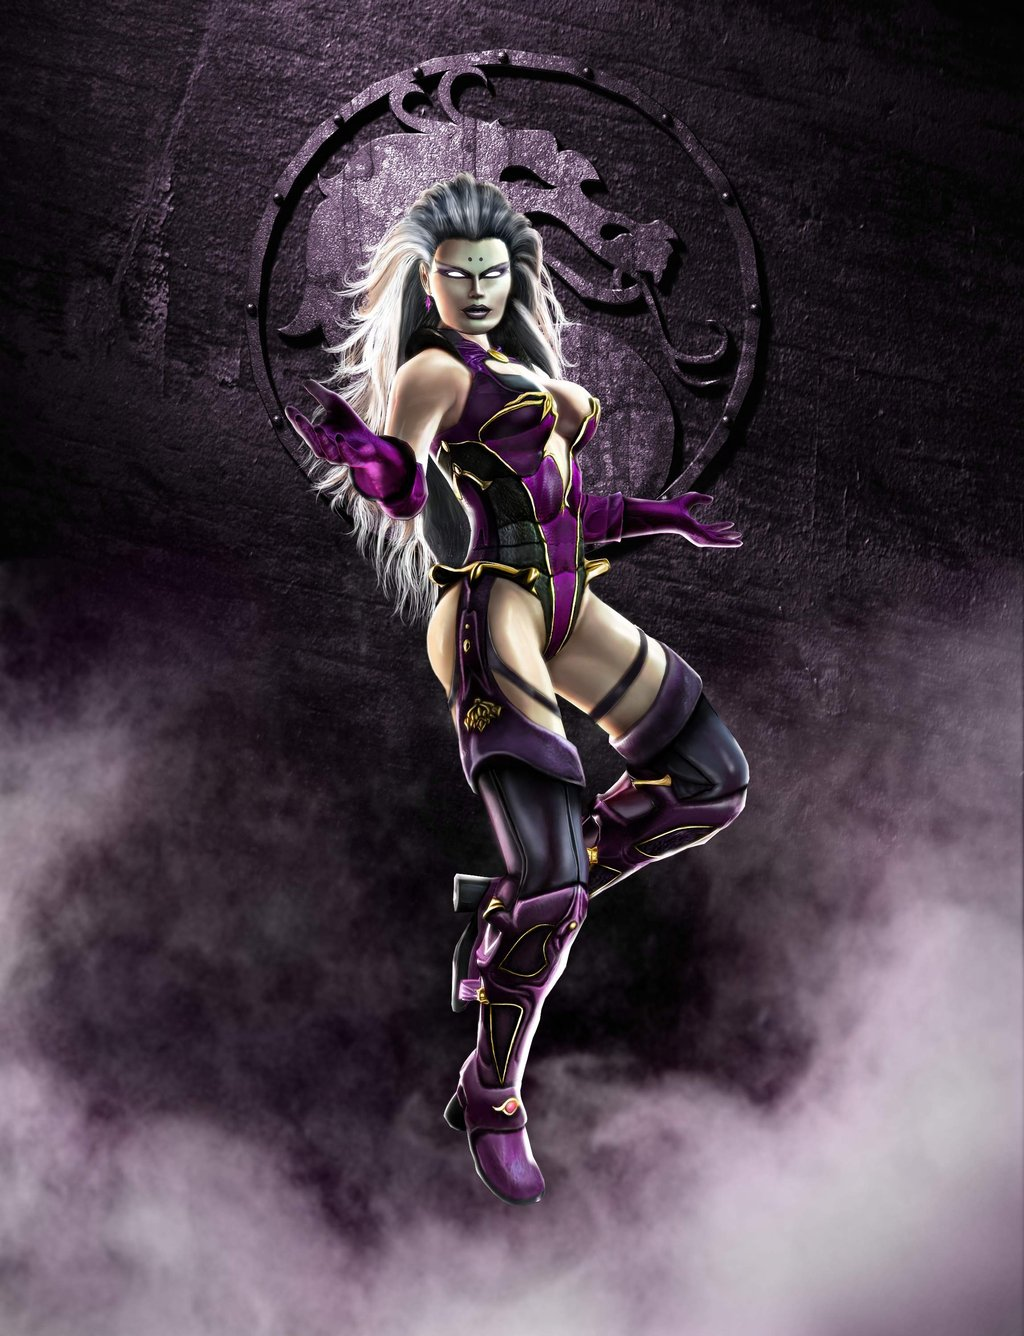 mileena in mortal kombat game wallpapers - Mileena Gallery The Mortal Kombat Wiki